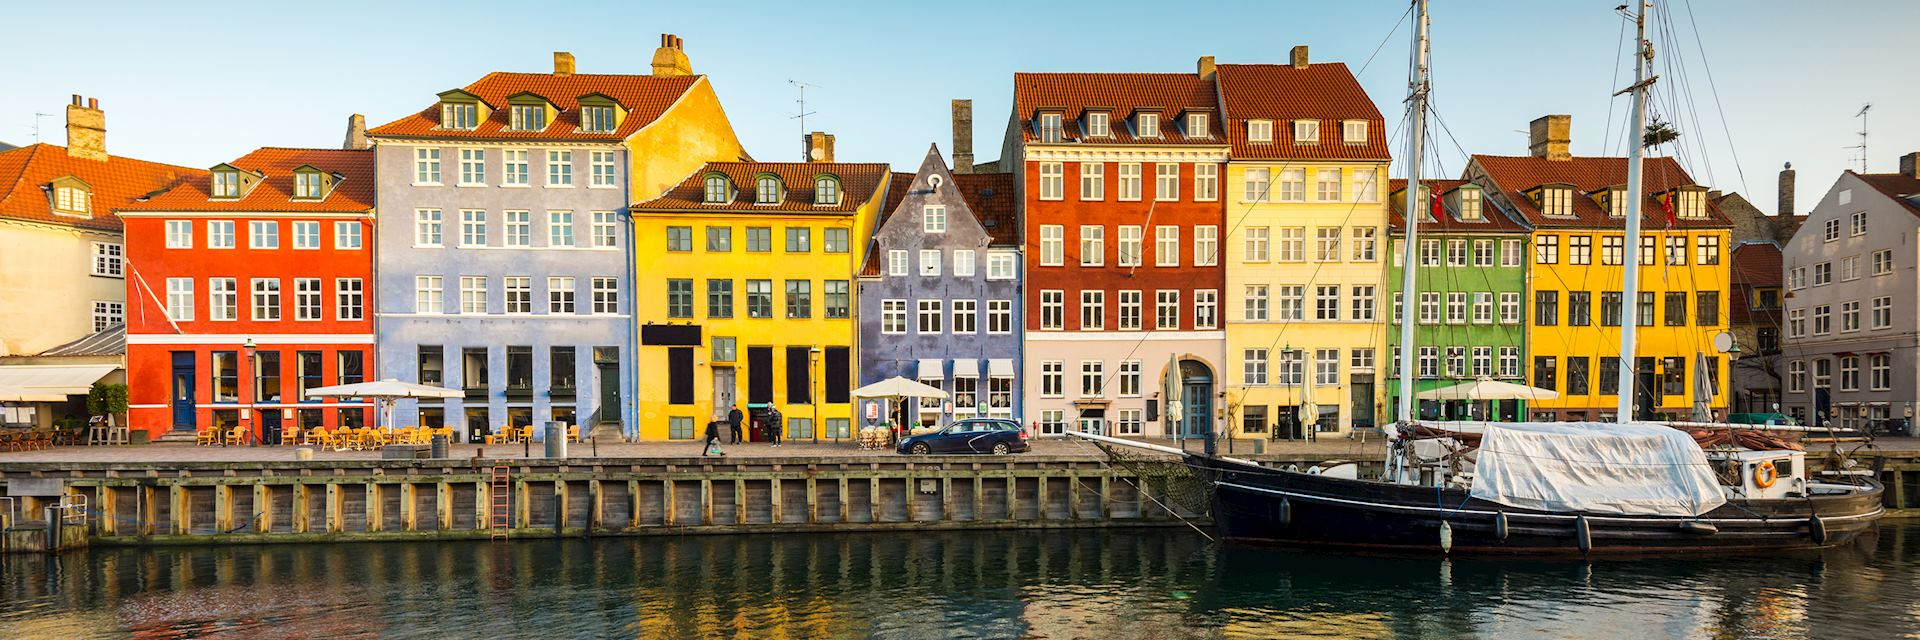 The waterfront canal of Nyhavn, Copenhagen